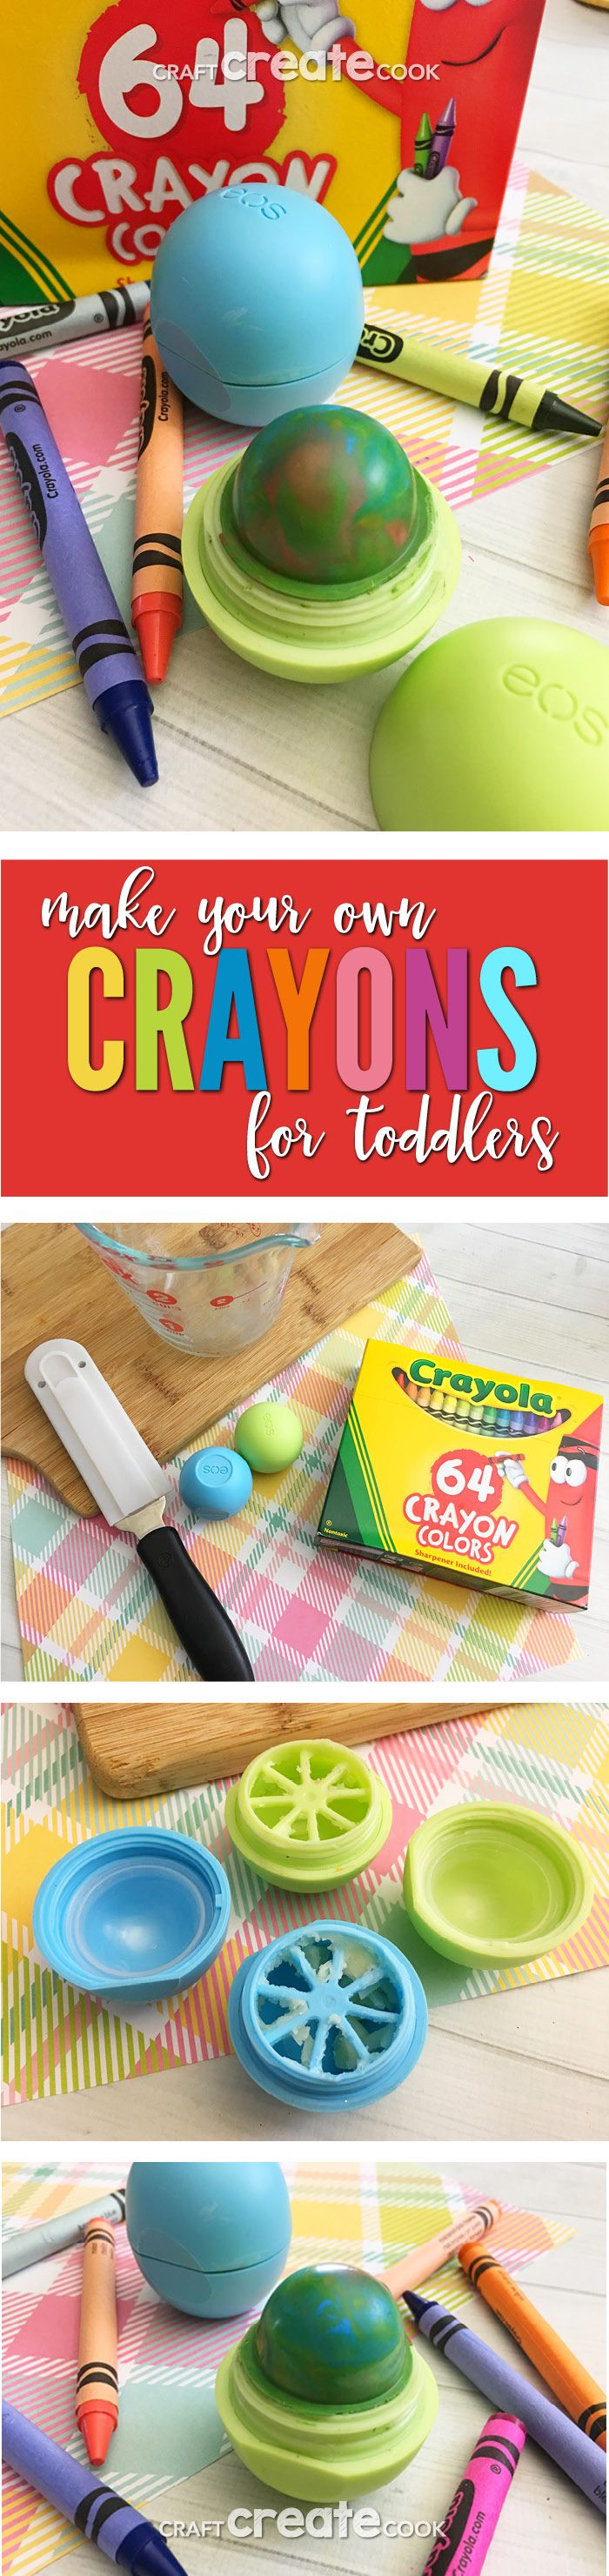 DIY Upcycled Crayons Craft using empty EOS Containers.  via @CraftCreatCook1